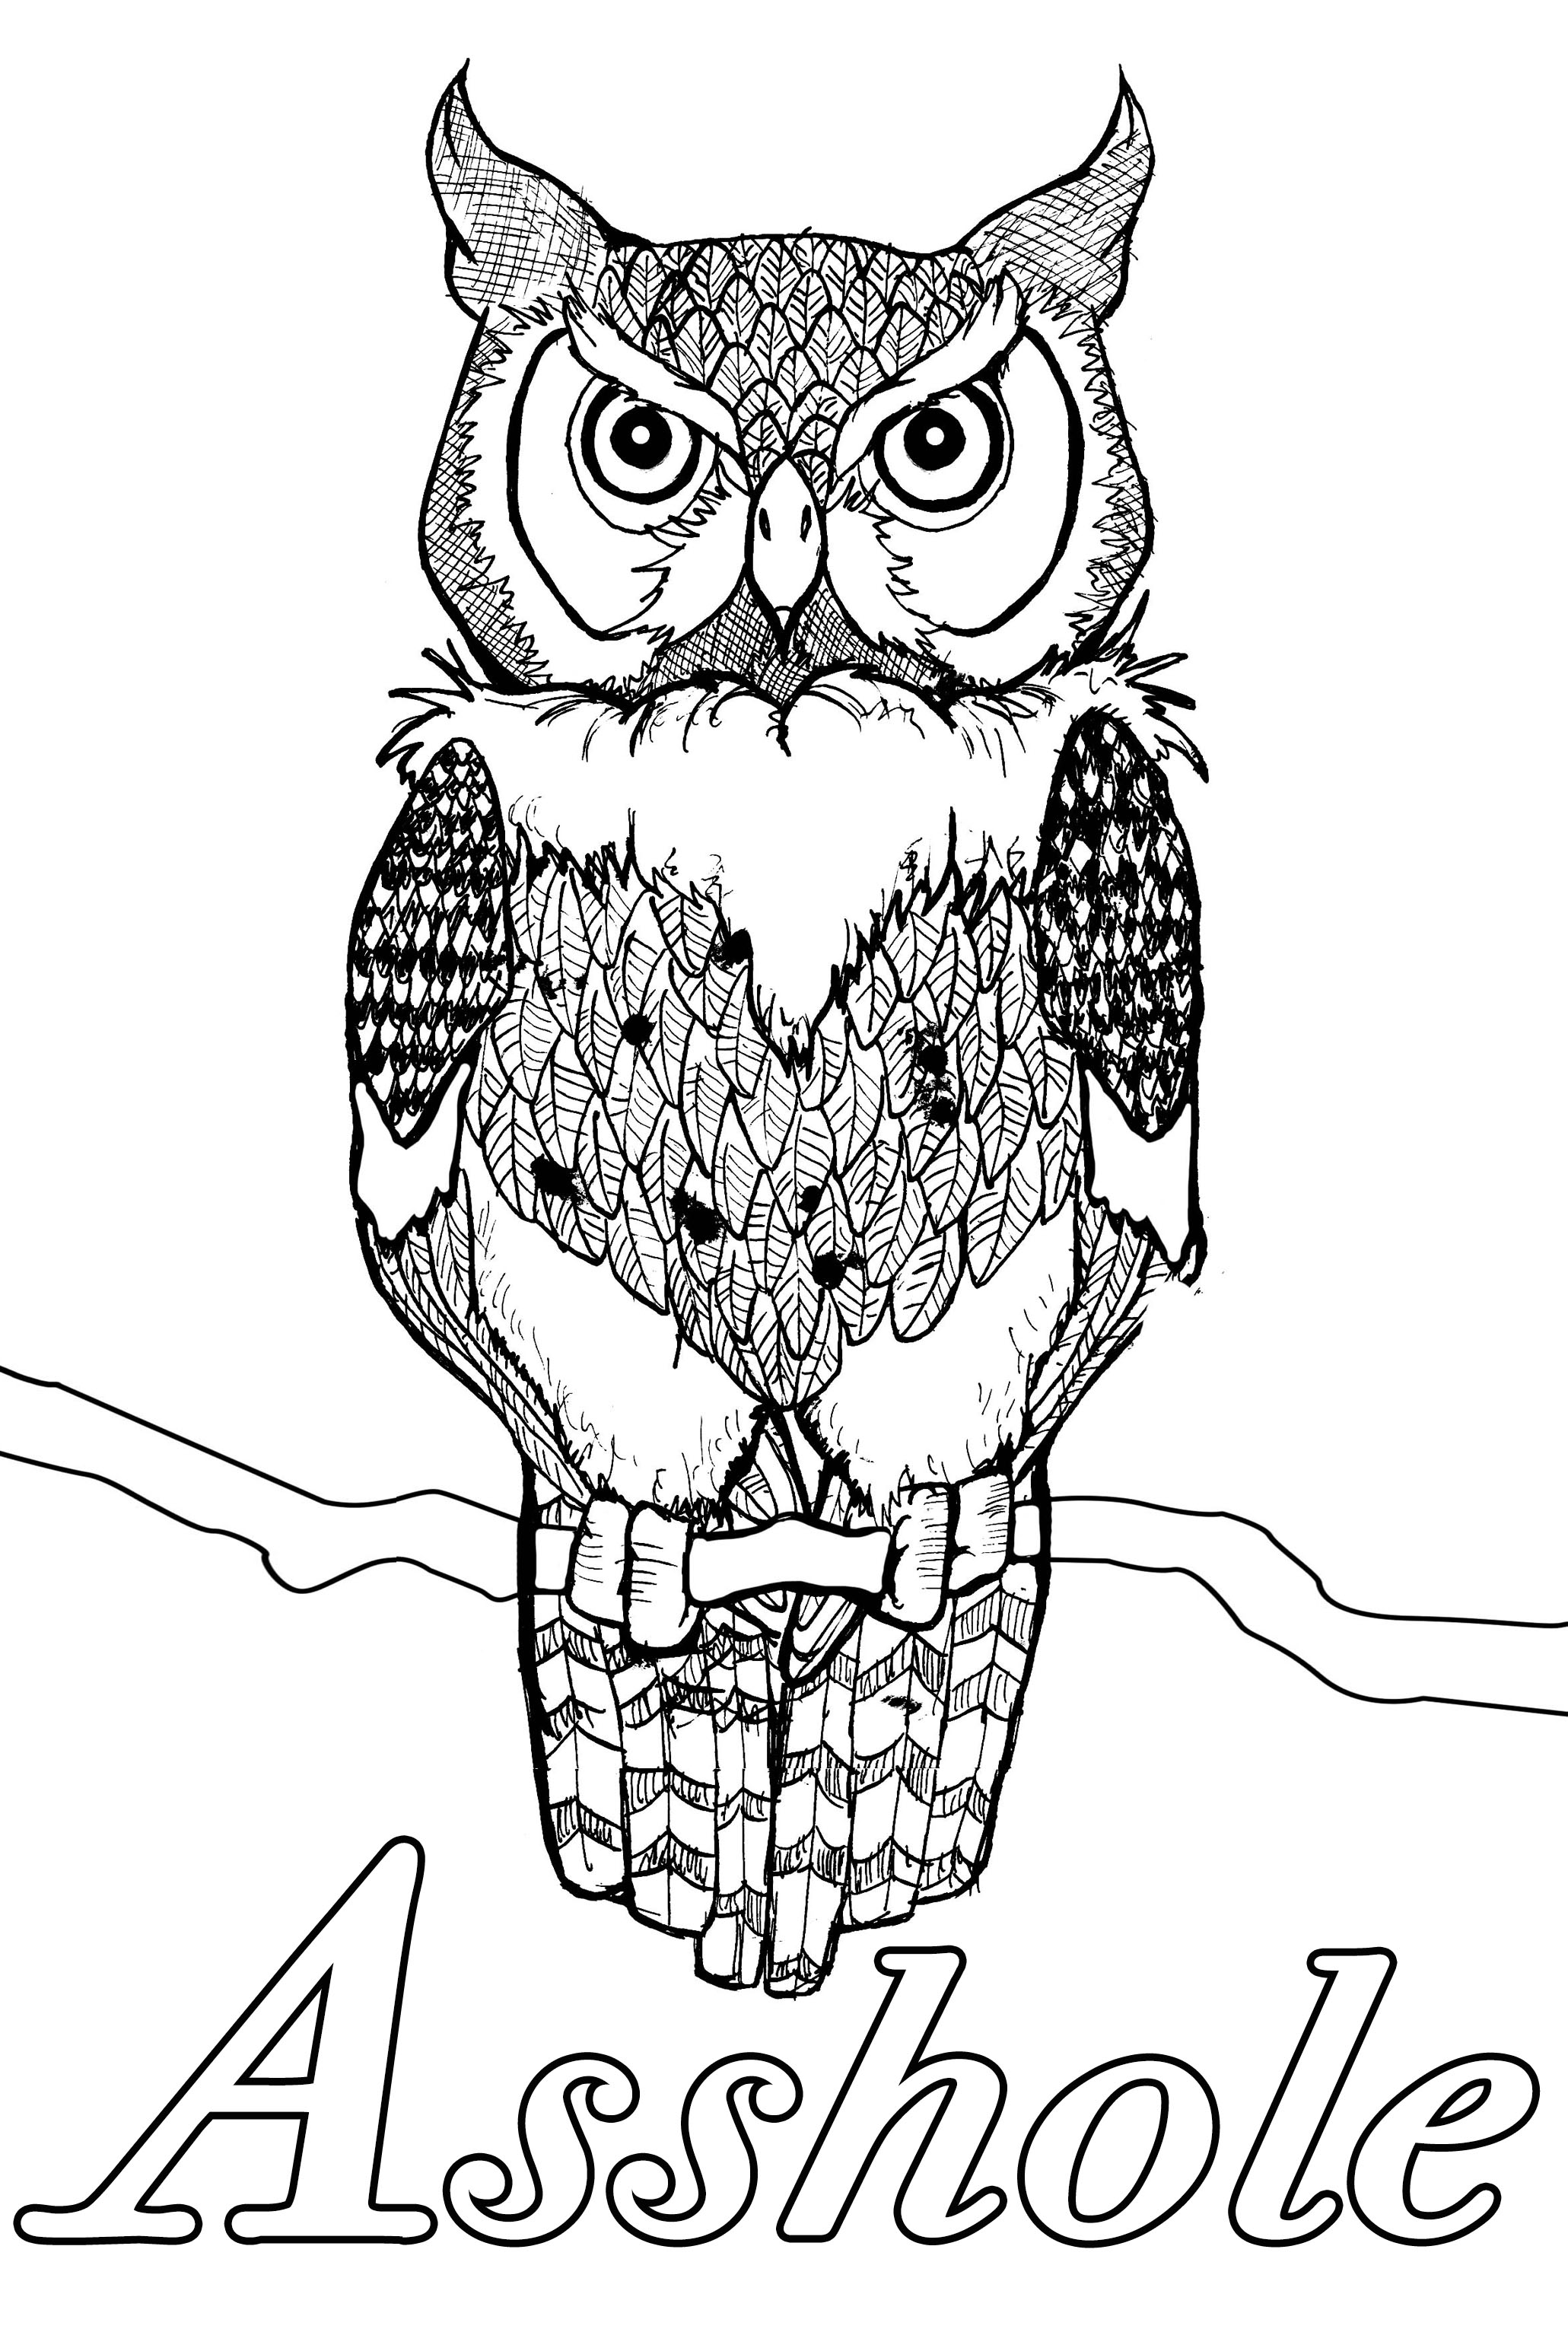 Asshole : Swear word coloring page with owl with a serious look